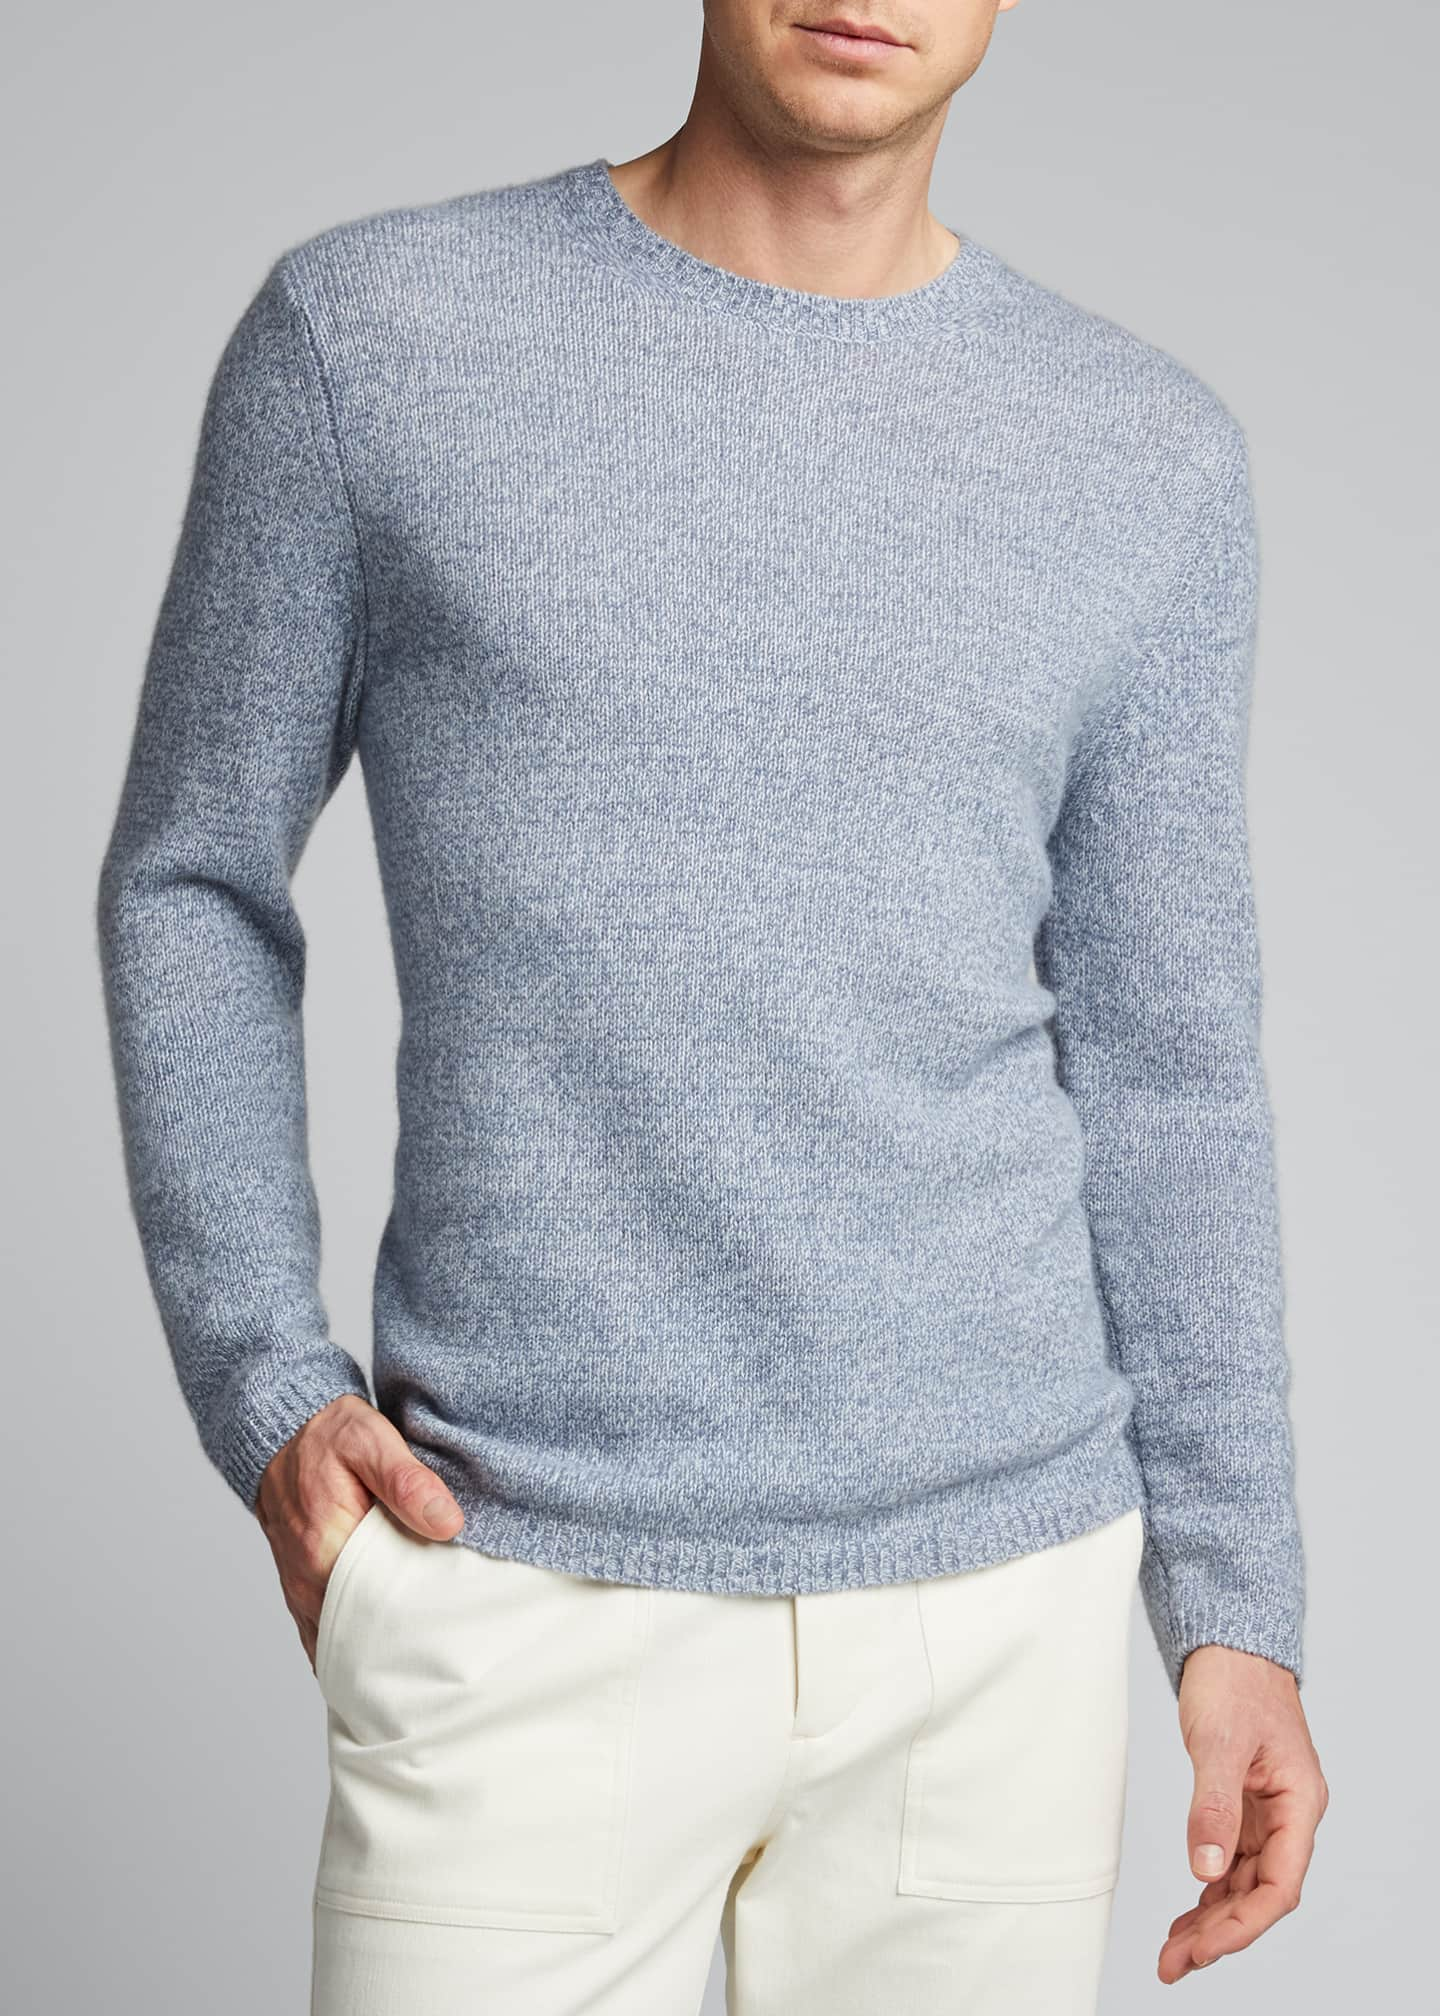 Image 3 of 5: Men's Solid Cashmere Crewneck Sweater